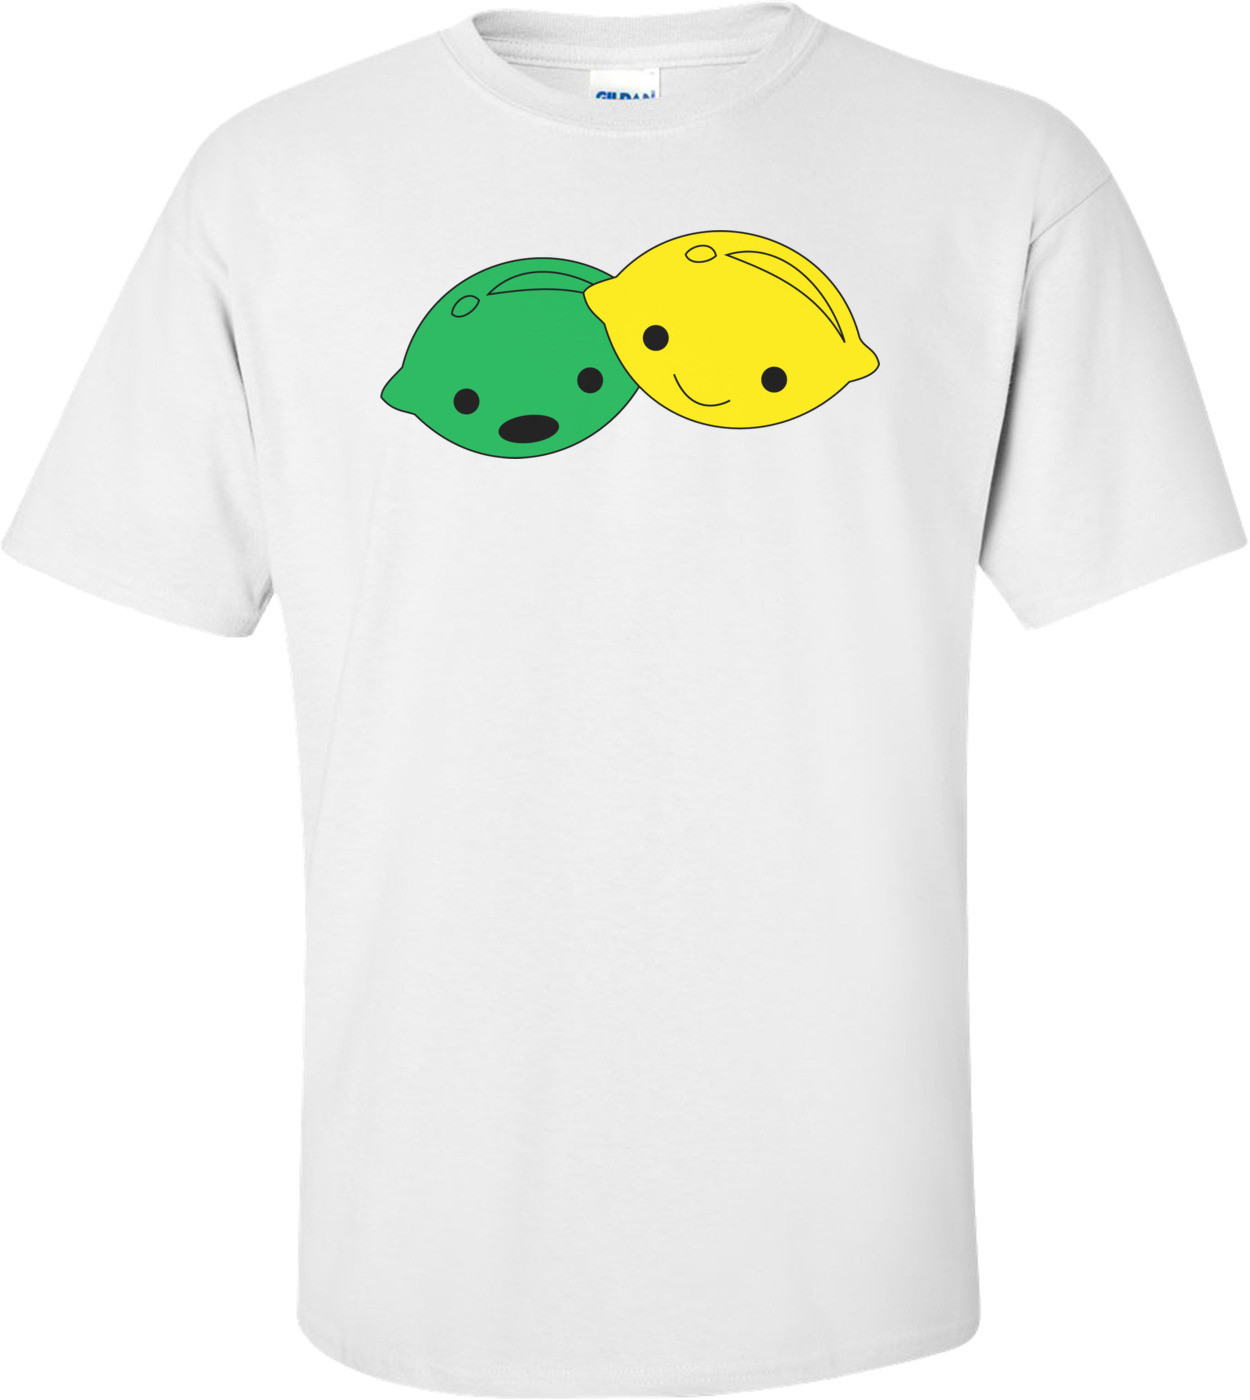 Lemon Lime Funny Shirt